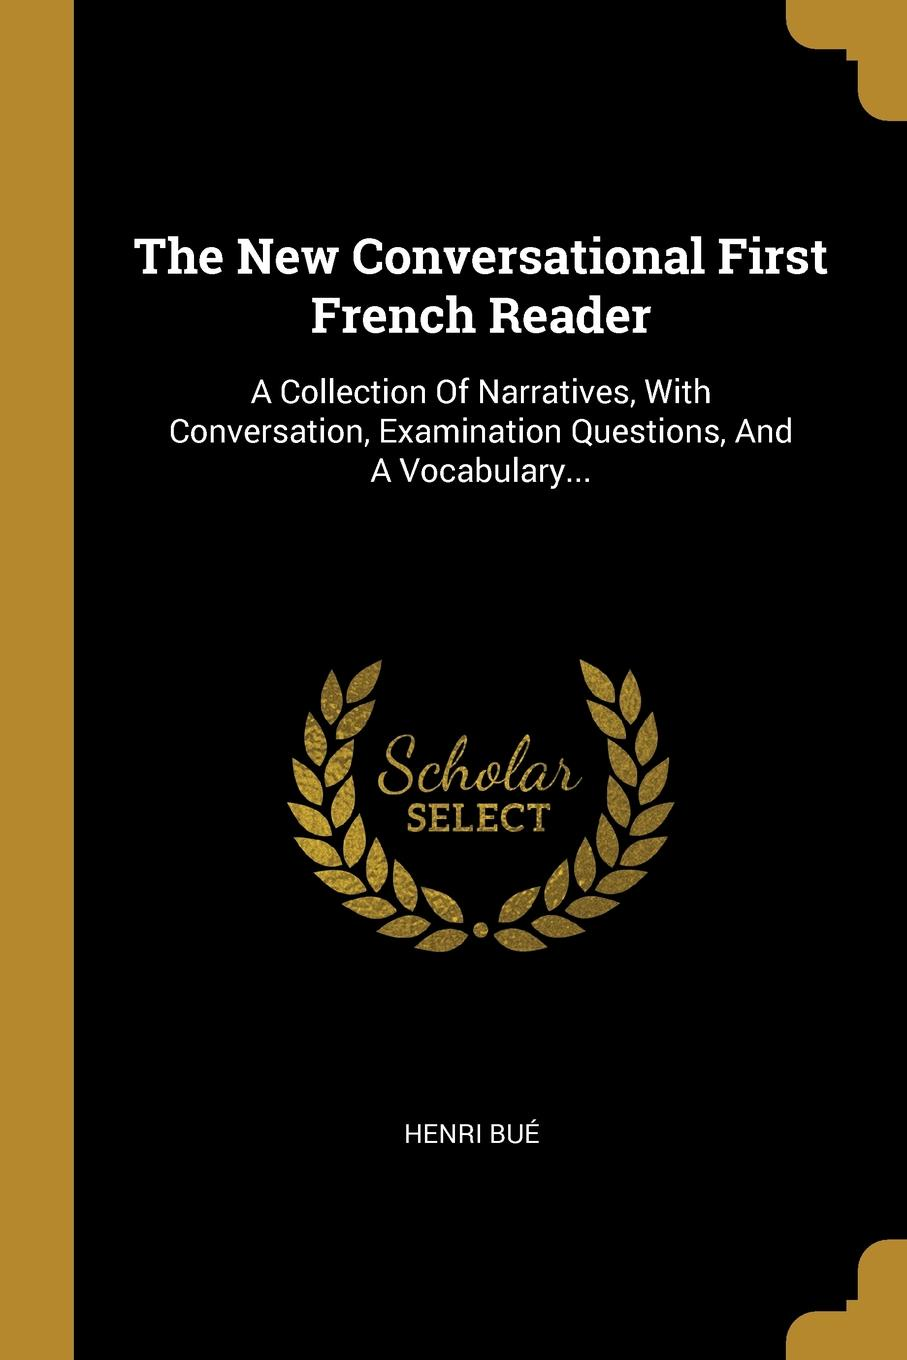 Henri Bué The New Conversational First French Reader. A Collection Of Narratives, With Conversation, Examination Questions, And A Vocabulary... henri bué the new conversational first french reader